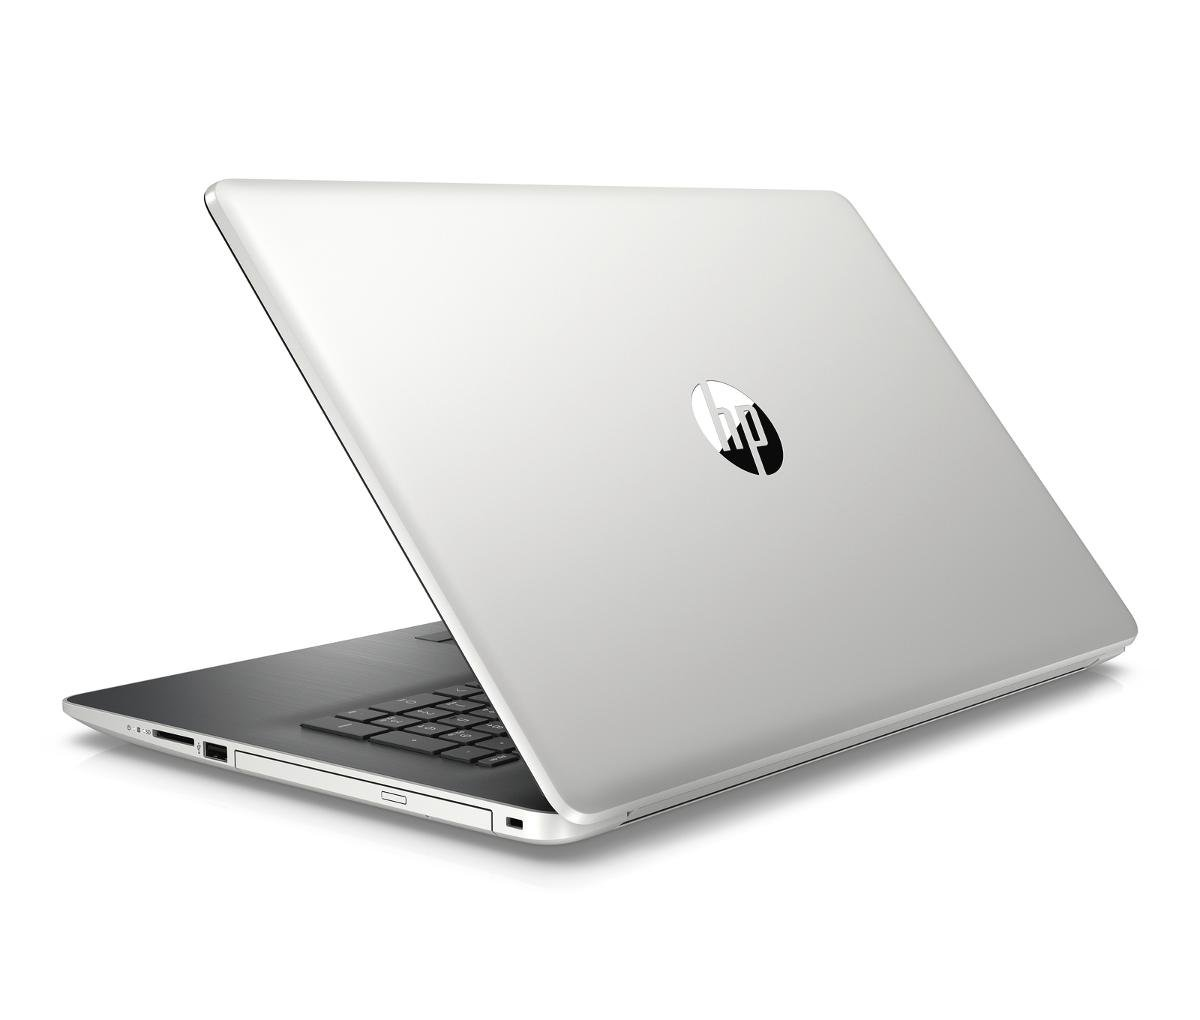 "Laptop HP 17 by0009nw 5QY21EA, Pentium Silver N5000, 4 GB RAM, 17,3"", 256 GB SSD, Windows 10 Home"